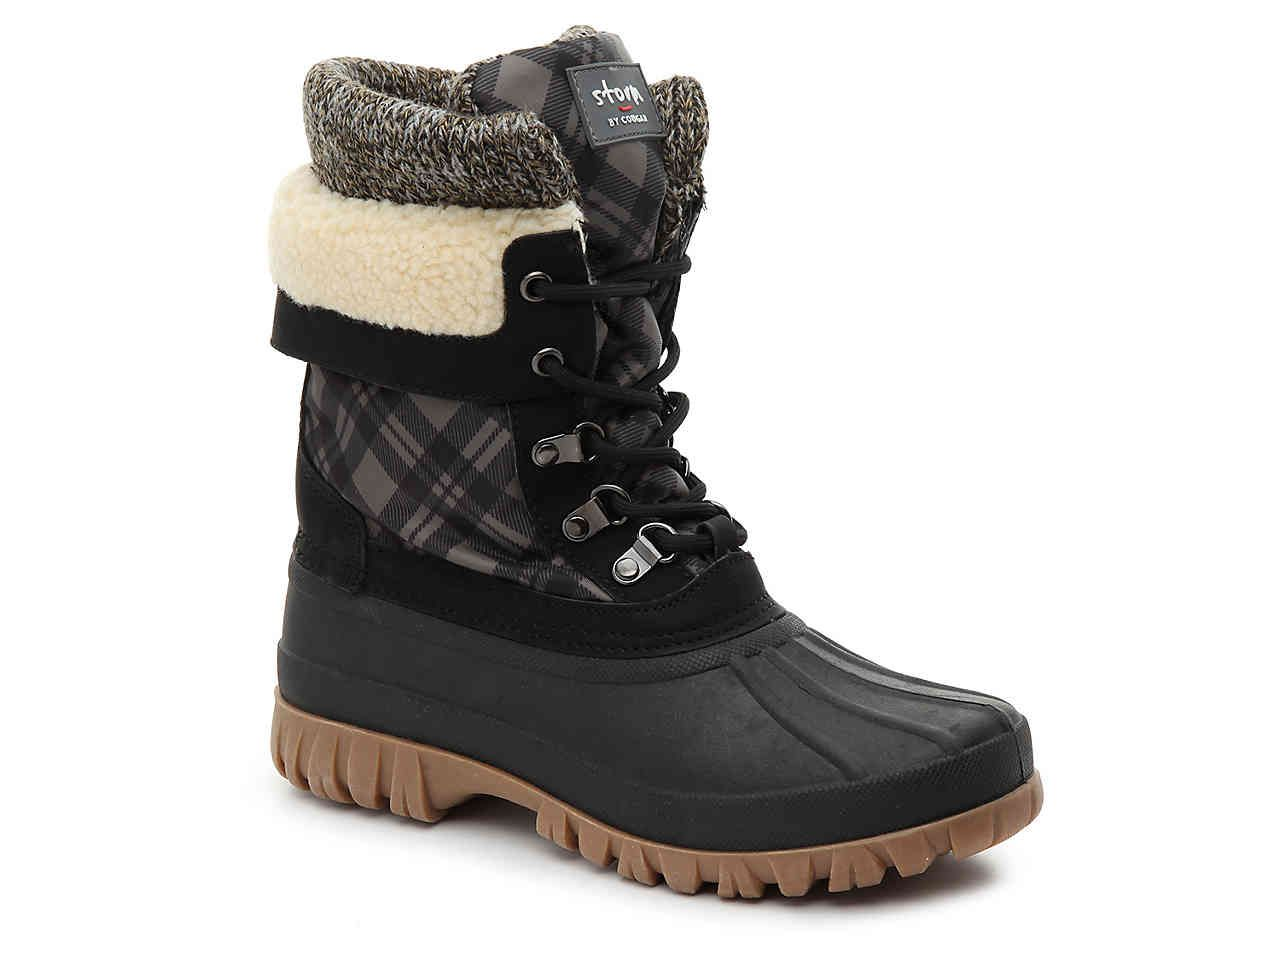 8917e6b38f5 Creek Snow Boot - Black Friday Reveals | ronnie boots | Boots, Snow ...